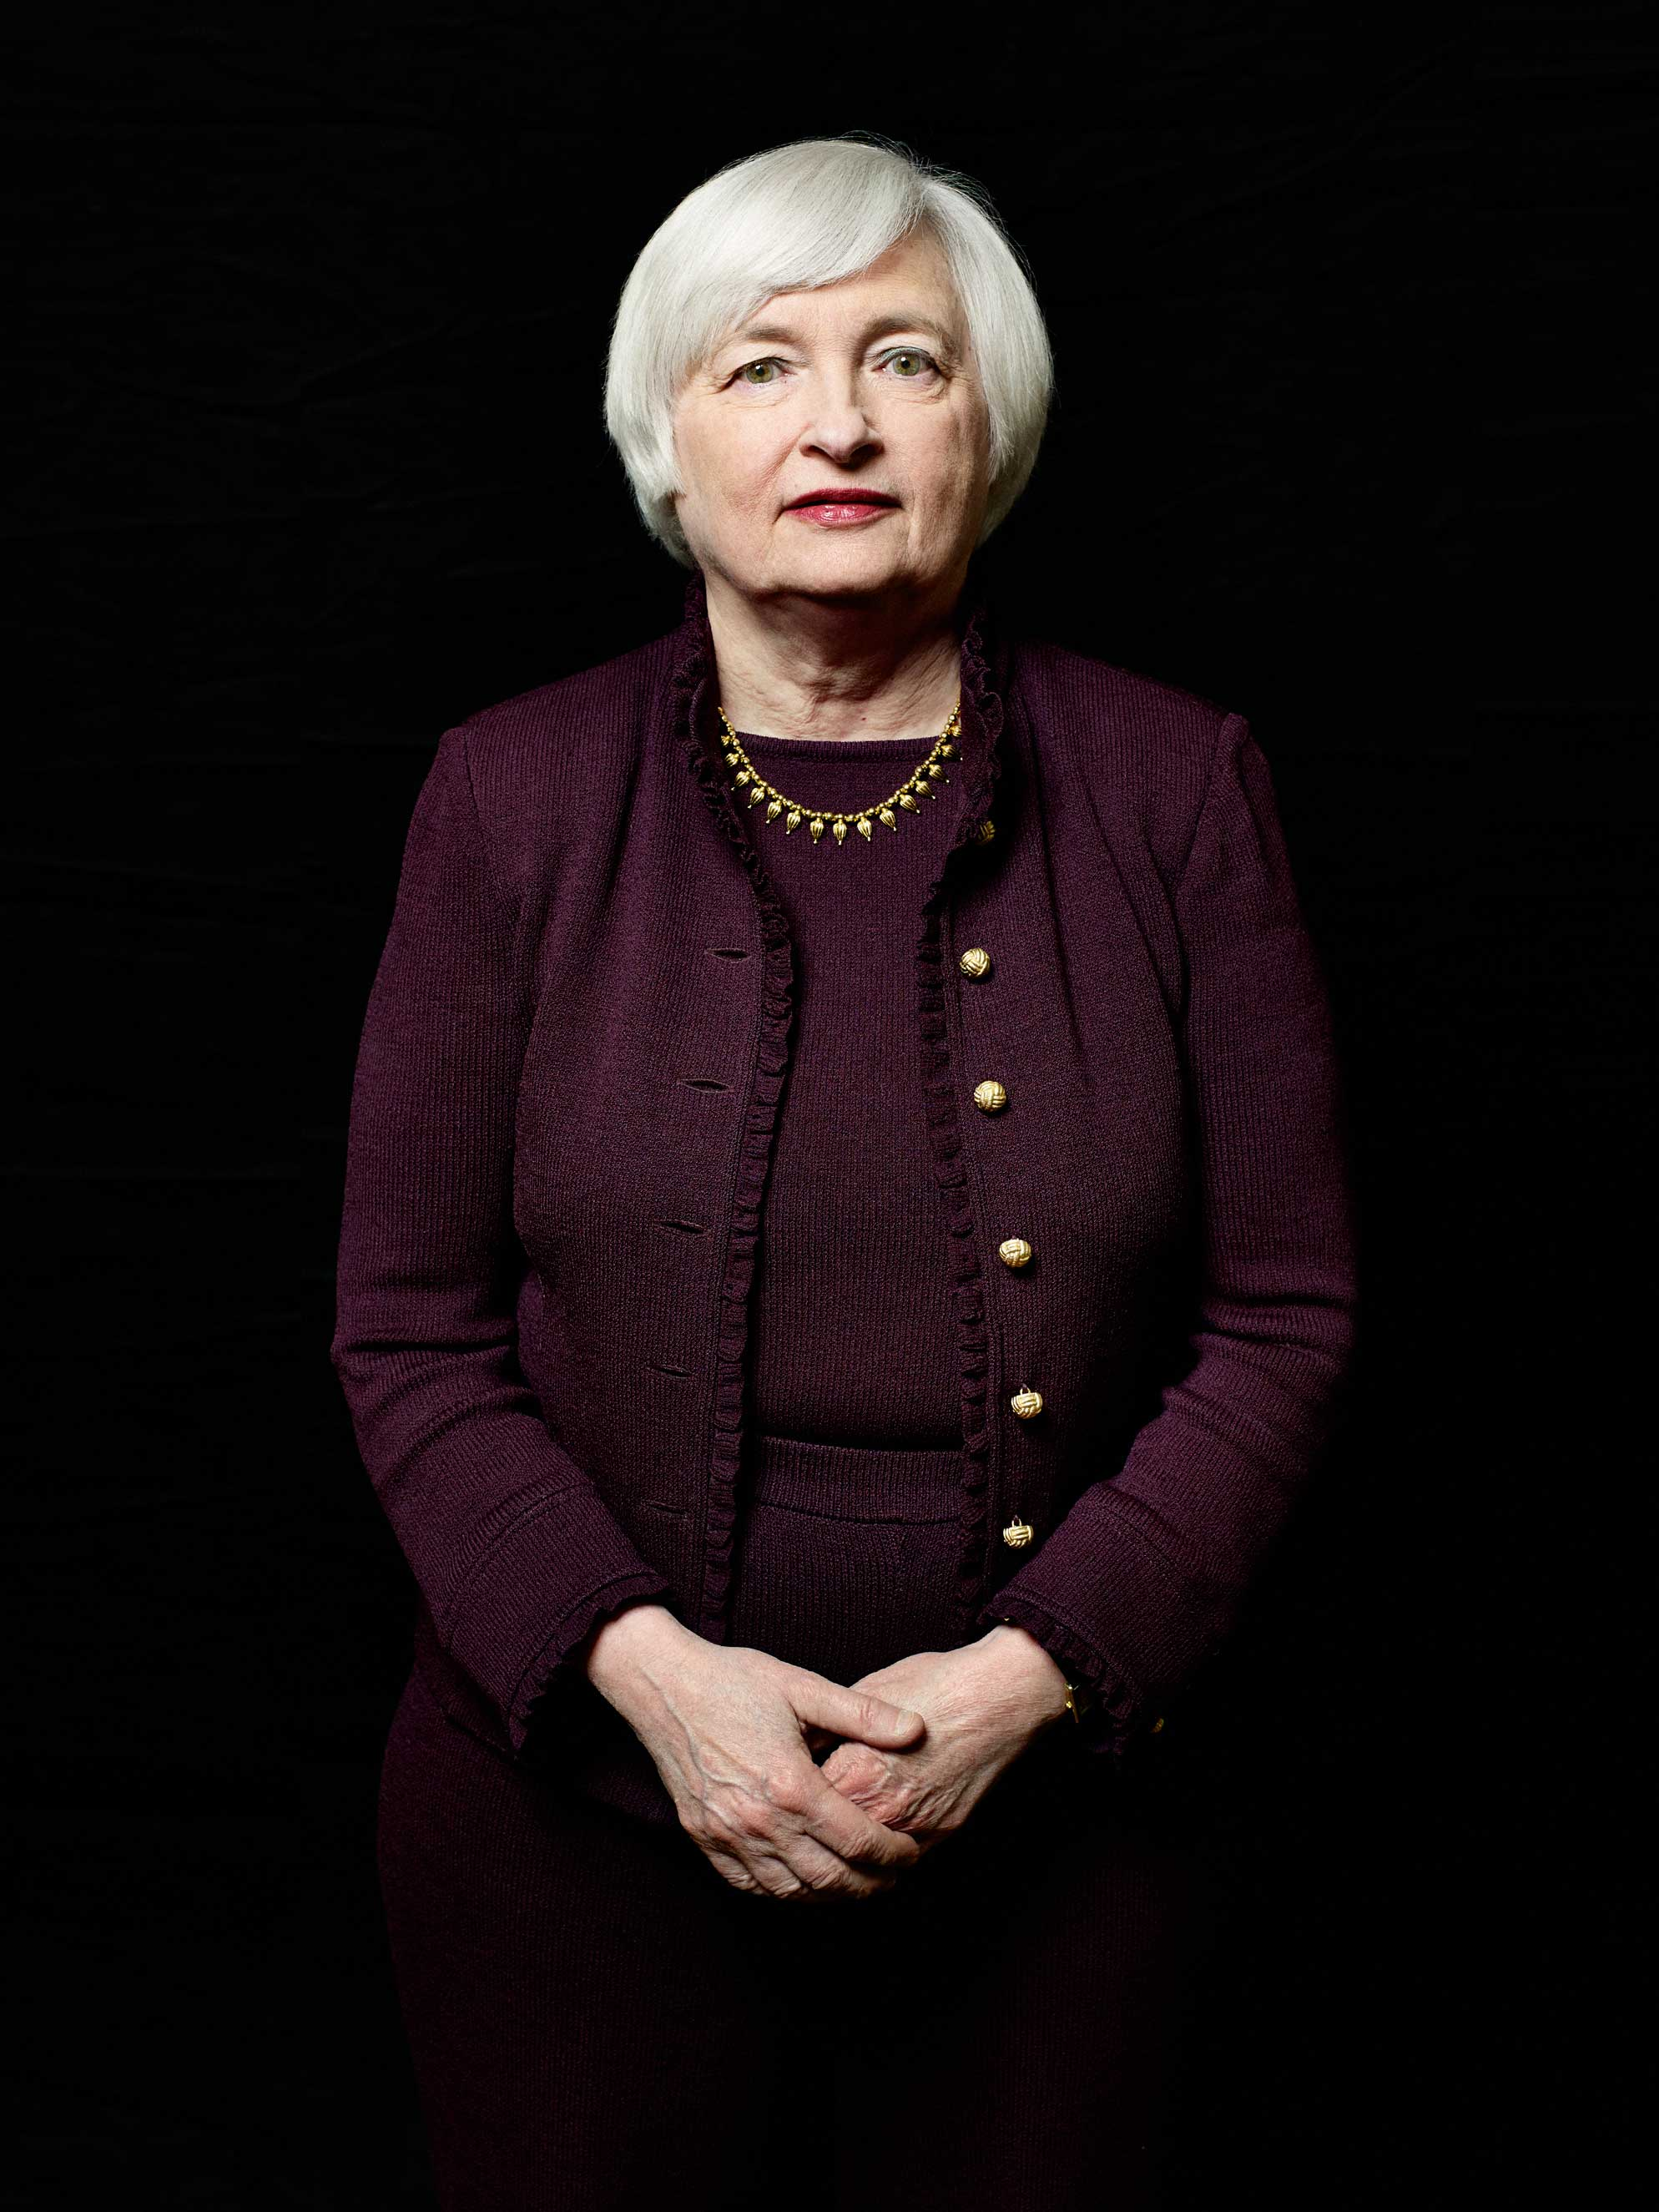 janet yellen by joseph stiglitz time 100 time com janet yellen by joseph stiglitz time